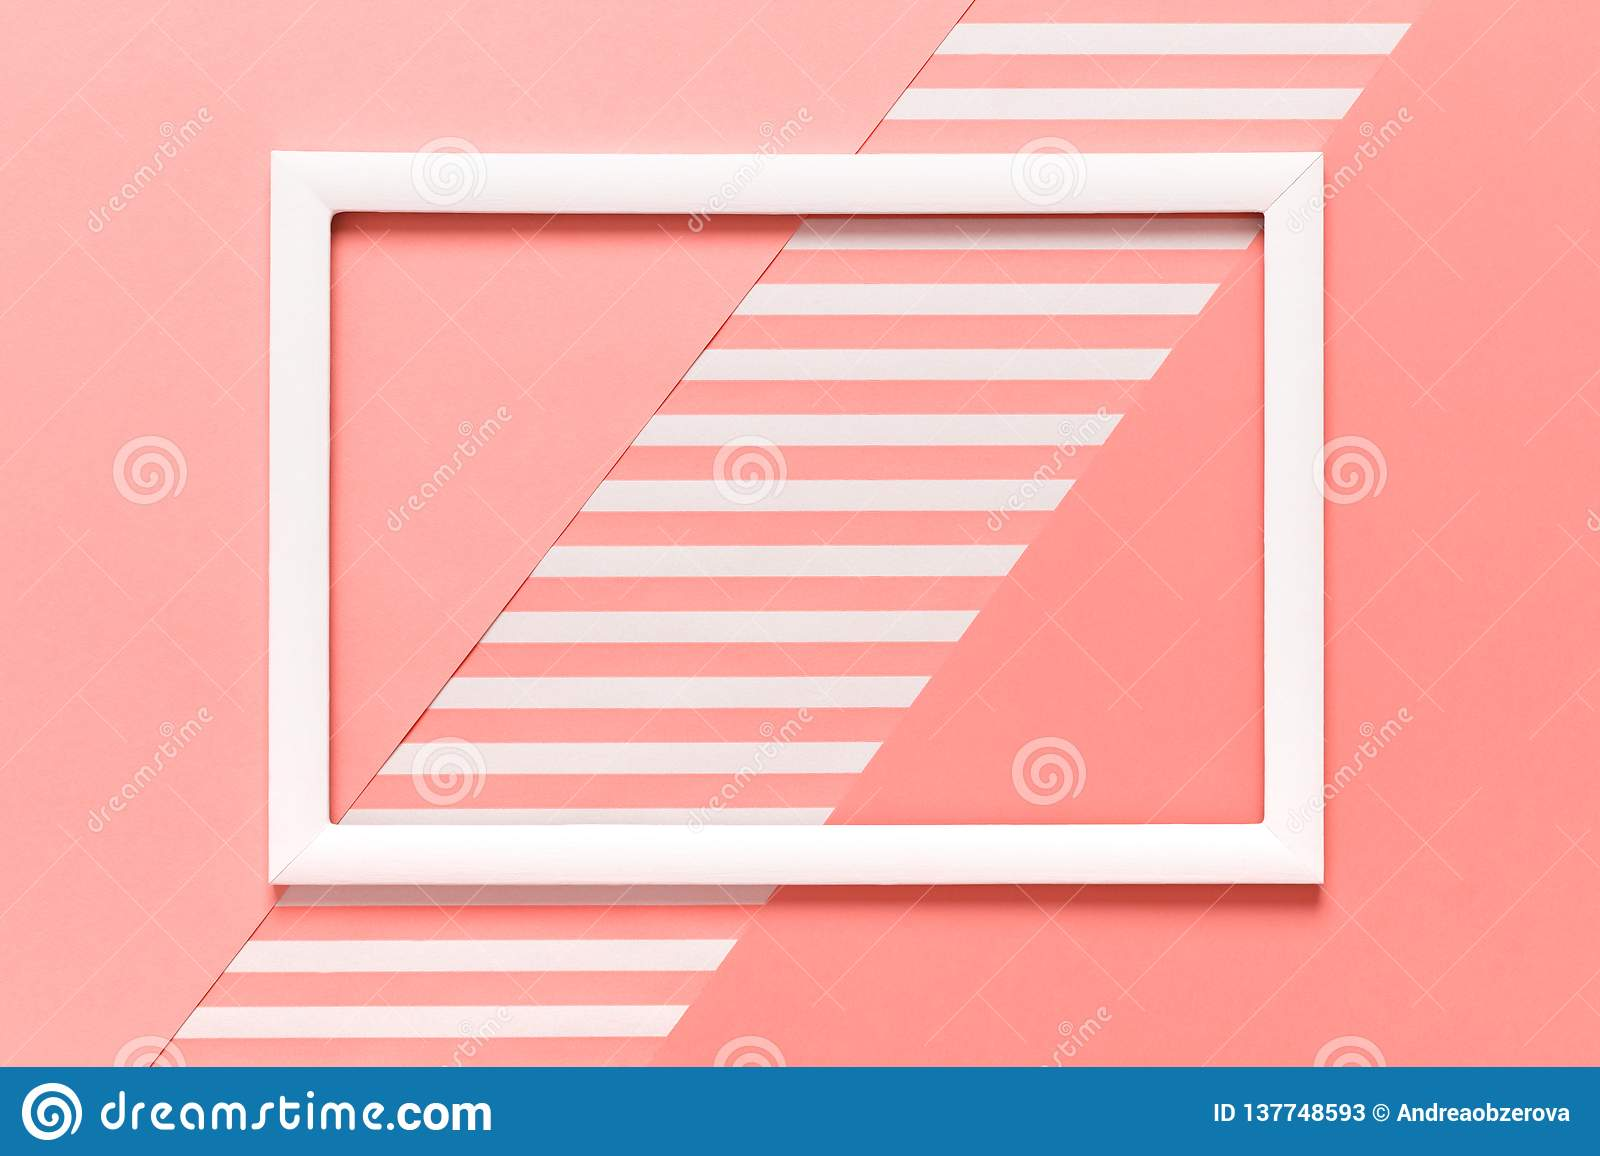 Abstract geometrical living coral pantone color flat lay background. Minimalism, geometry and symmetry template.